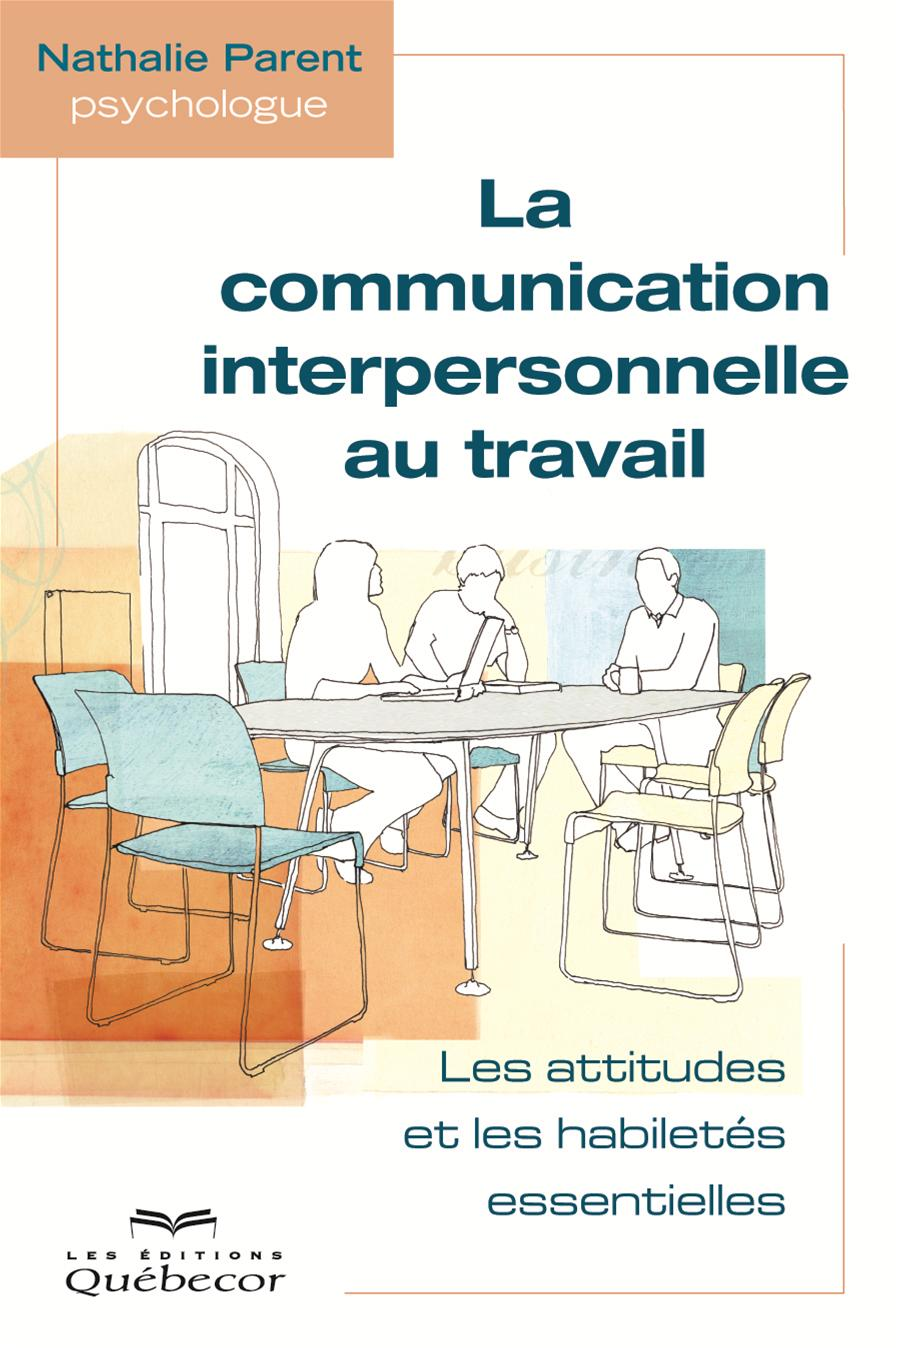 La communication interpersonnelle au travail